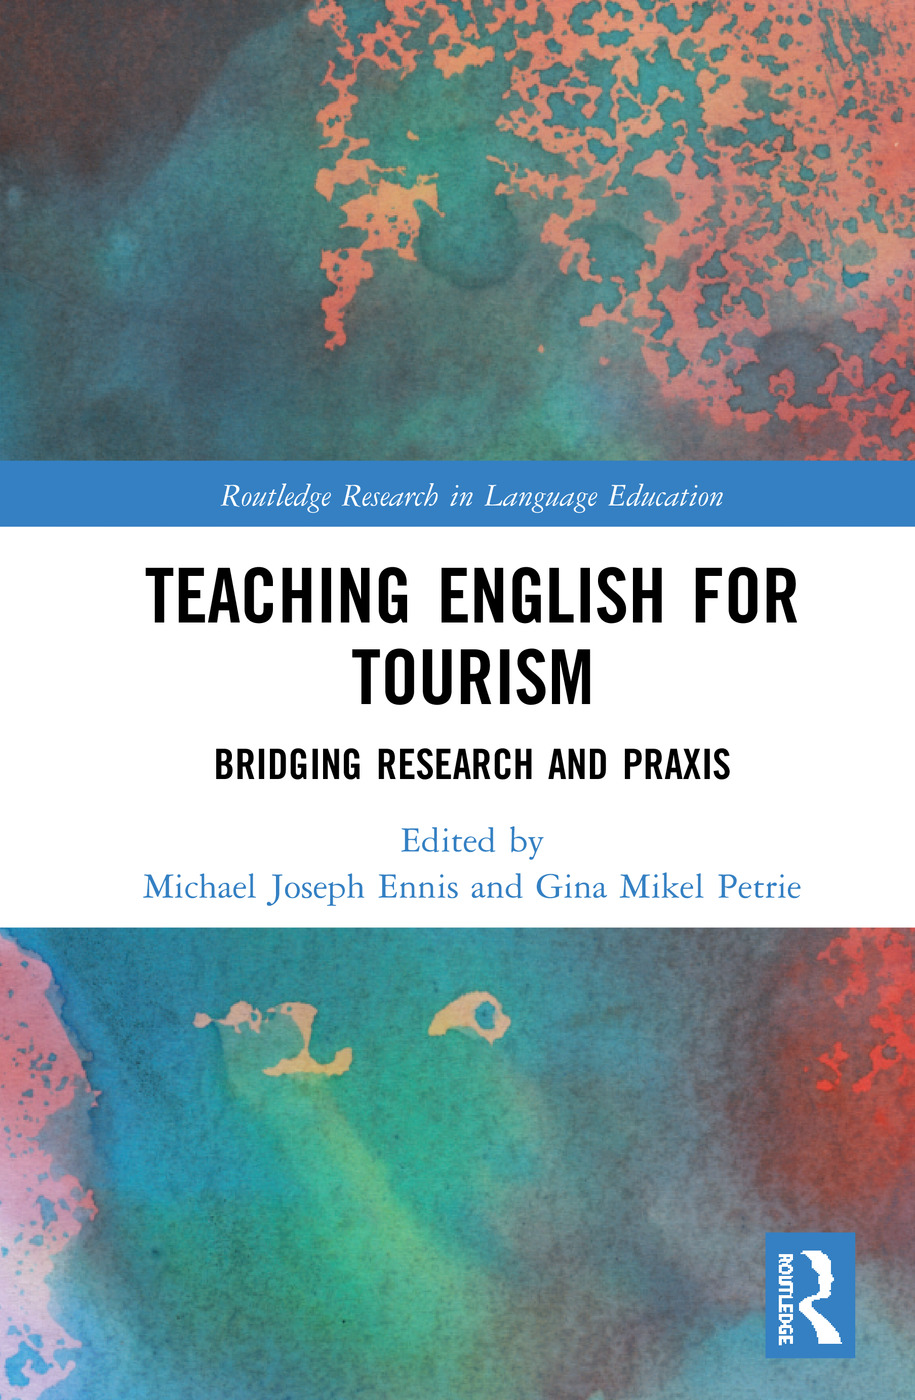 Teaching English for Tourism: Bridging Research and Praxis book cover